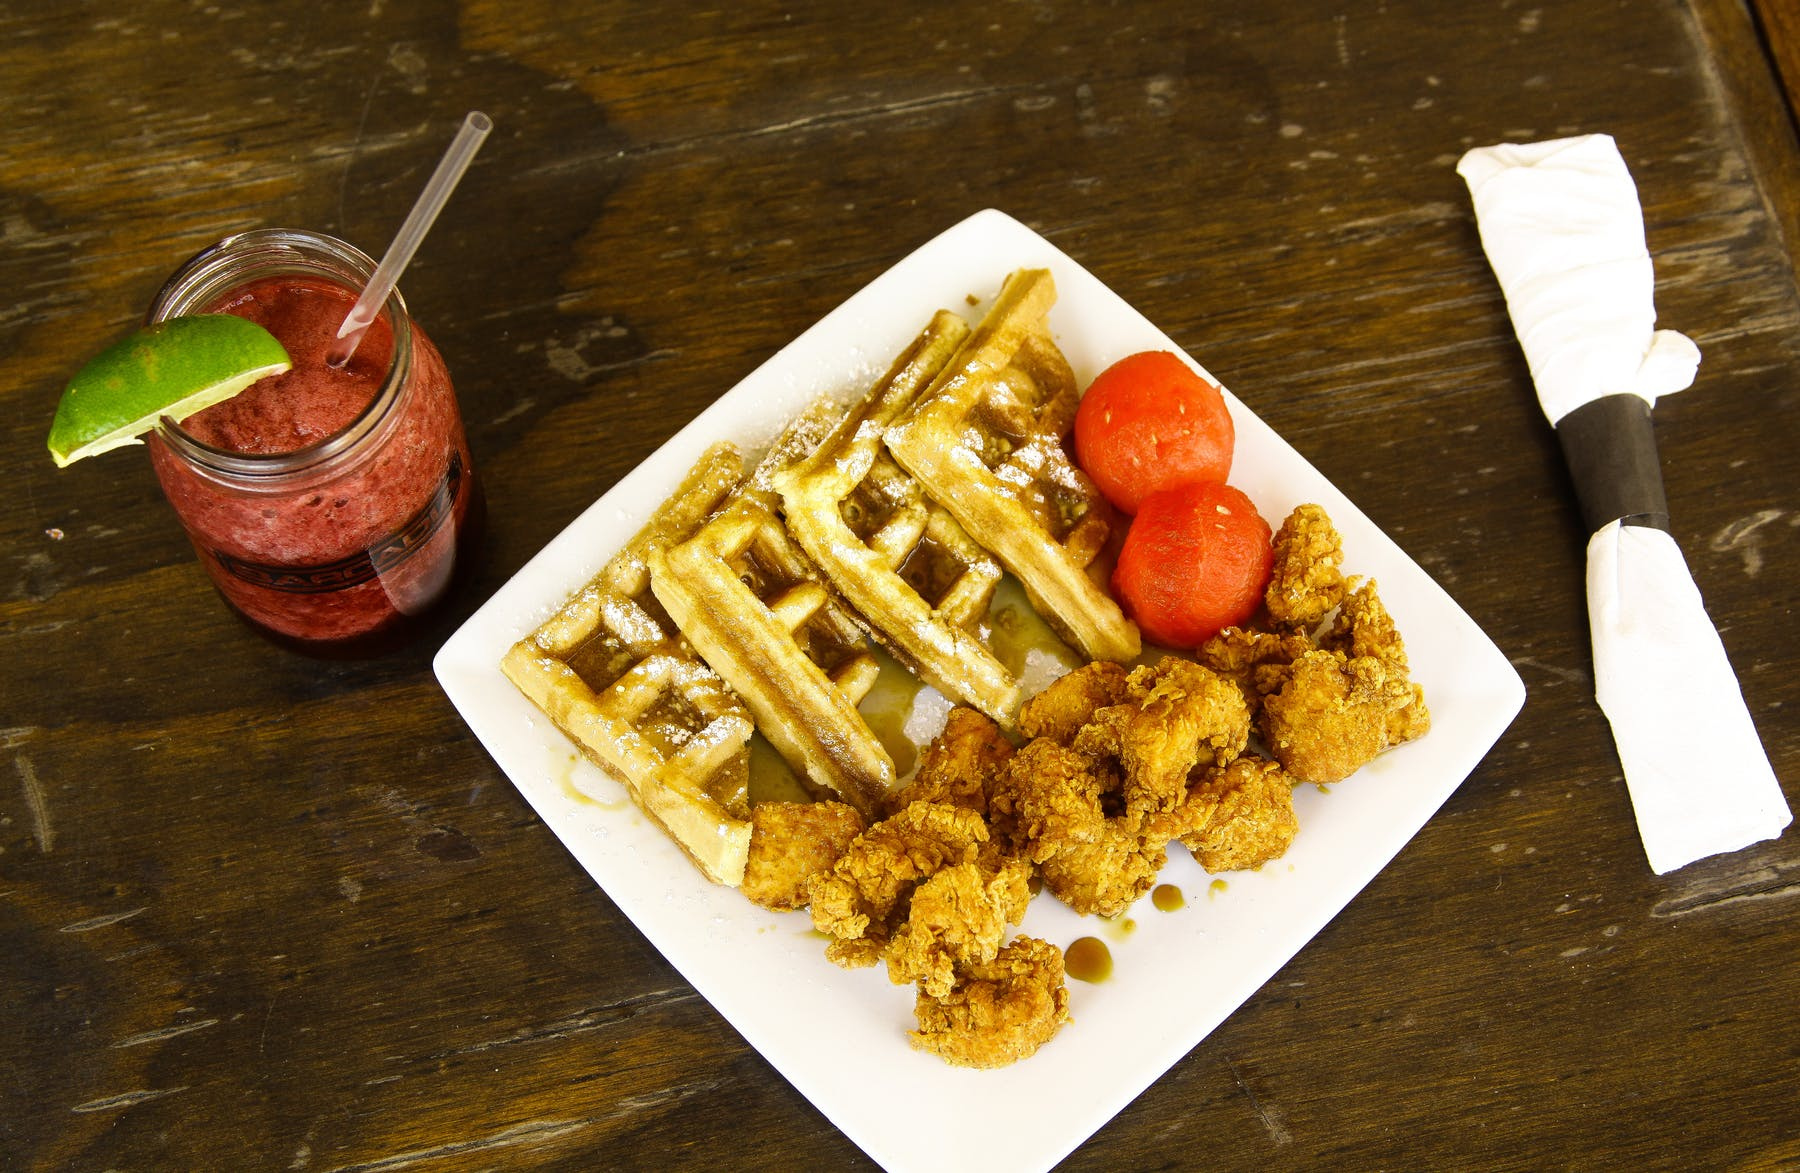 waffles with fried chicken and strawberries